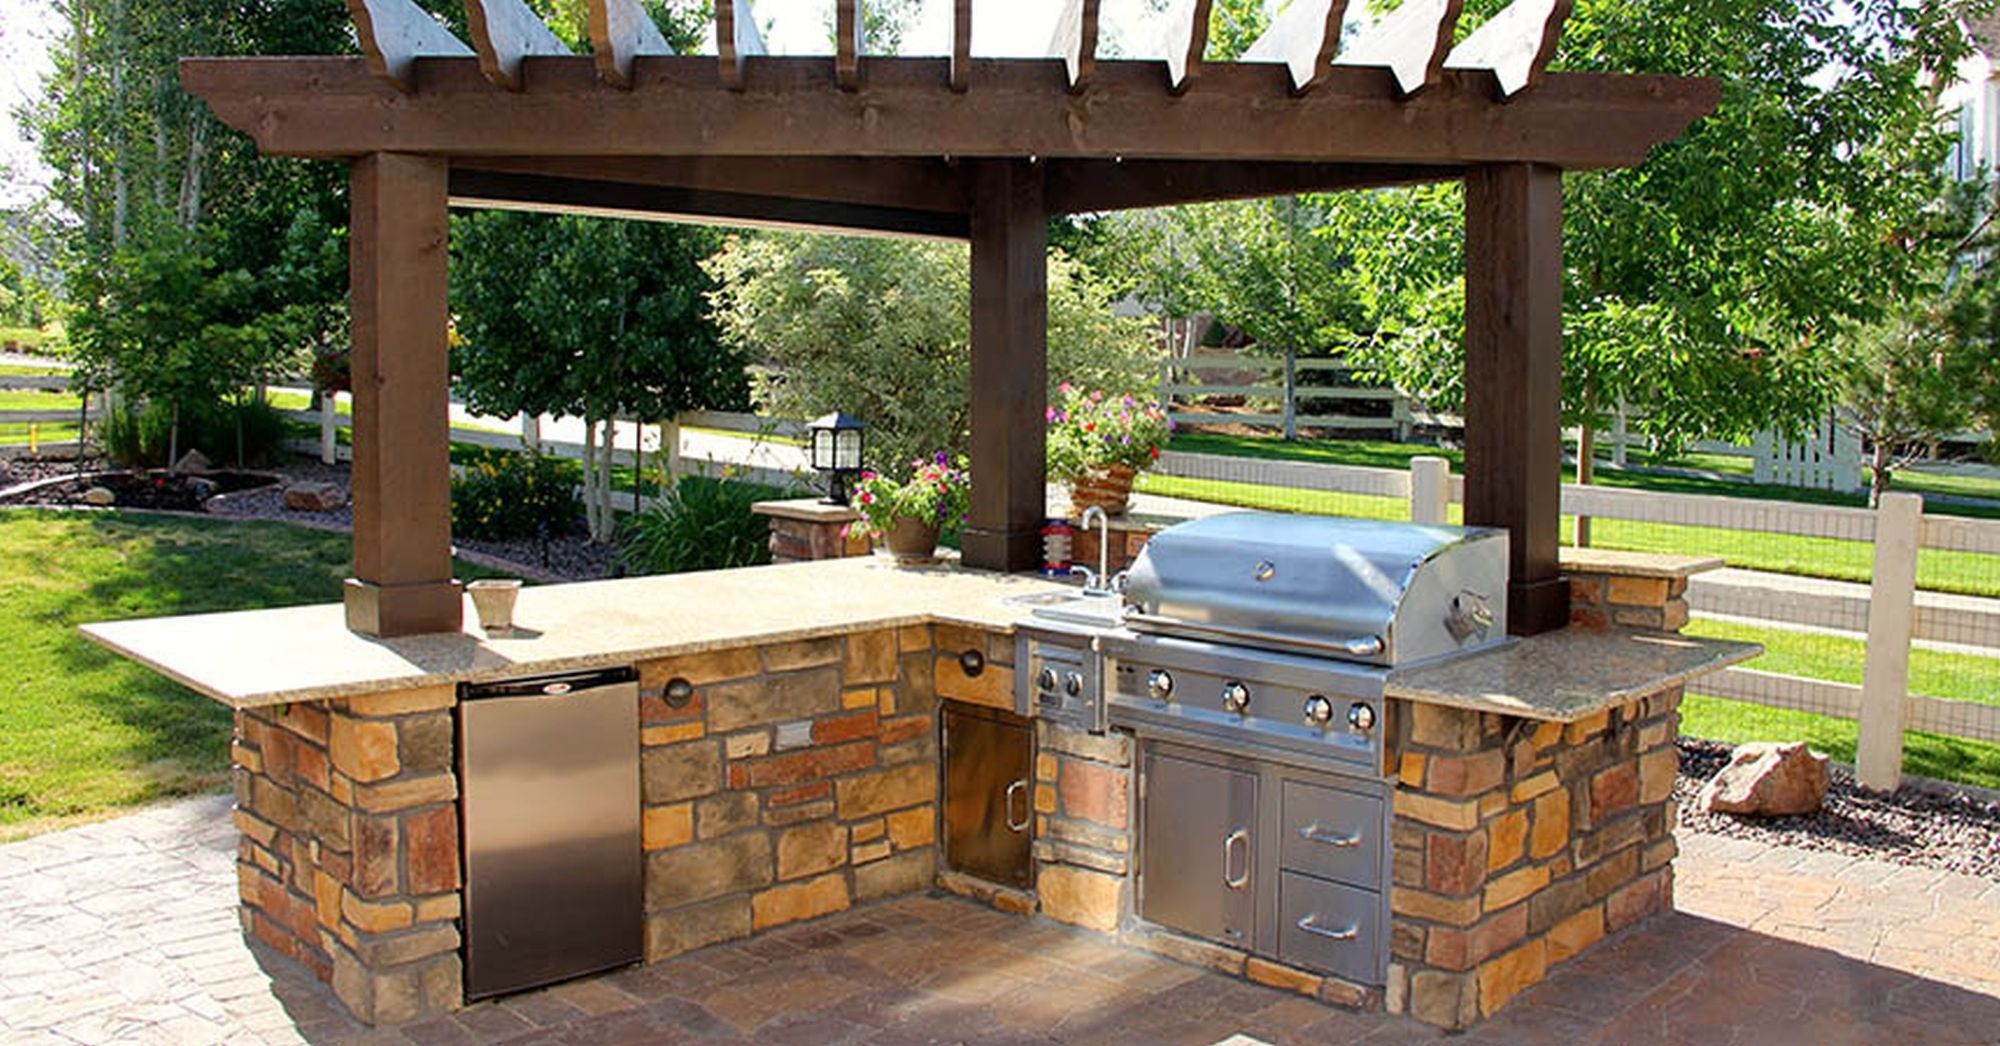 how much does an outdoor kitchen cost angled cabinets patio set designs with stone wall also grill and countertops as well pergola